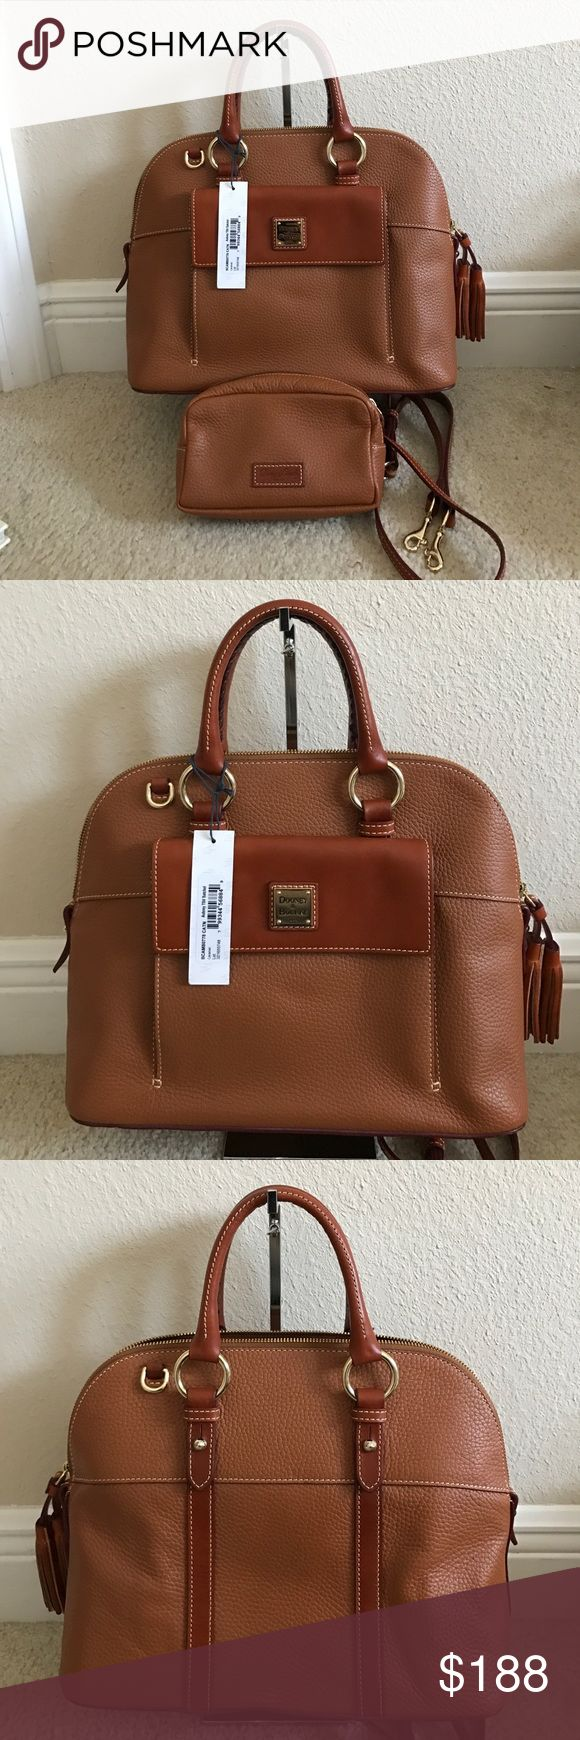 "Dooney&Bourke Pebble Leather Aubrey Satchel w/acc Preown in great condition. Comes with accessories. Color caramel. Back right has some wrinkles. Approximate measurements: Satchel 13""W x 11""H x 5-3/4""D with a 4-1/2"" handle drop and a 20"" to 23"" strap drop, weighs approximately 2 lbs, 14 oz; Cosmetic case 6-3/4""W x 4""H x 2-1/4""D Body/trim 100% leather; lining 100% cotton Dooney & Bourke Bags Satchels"